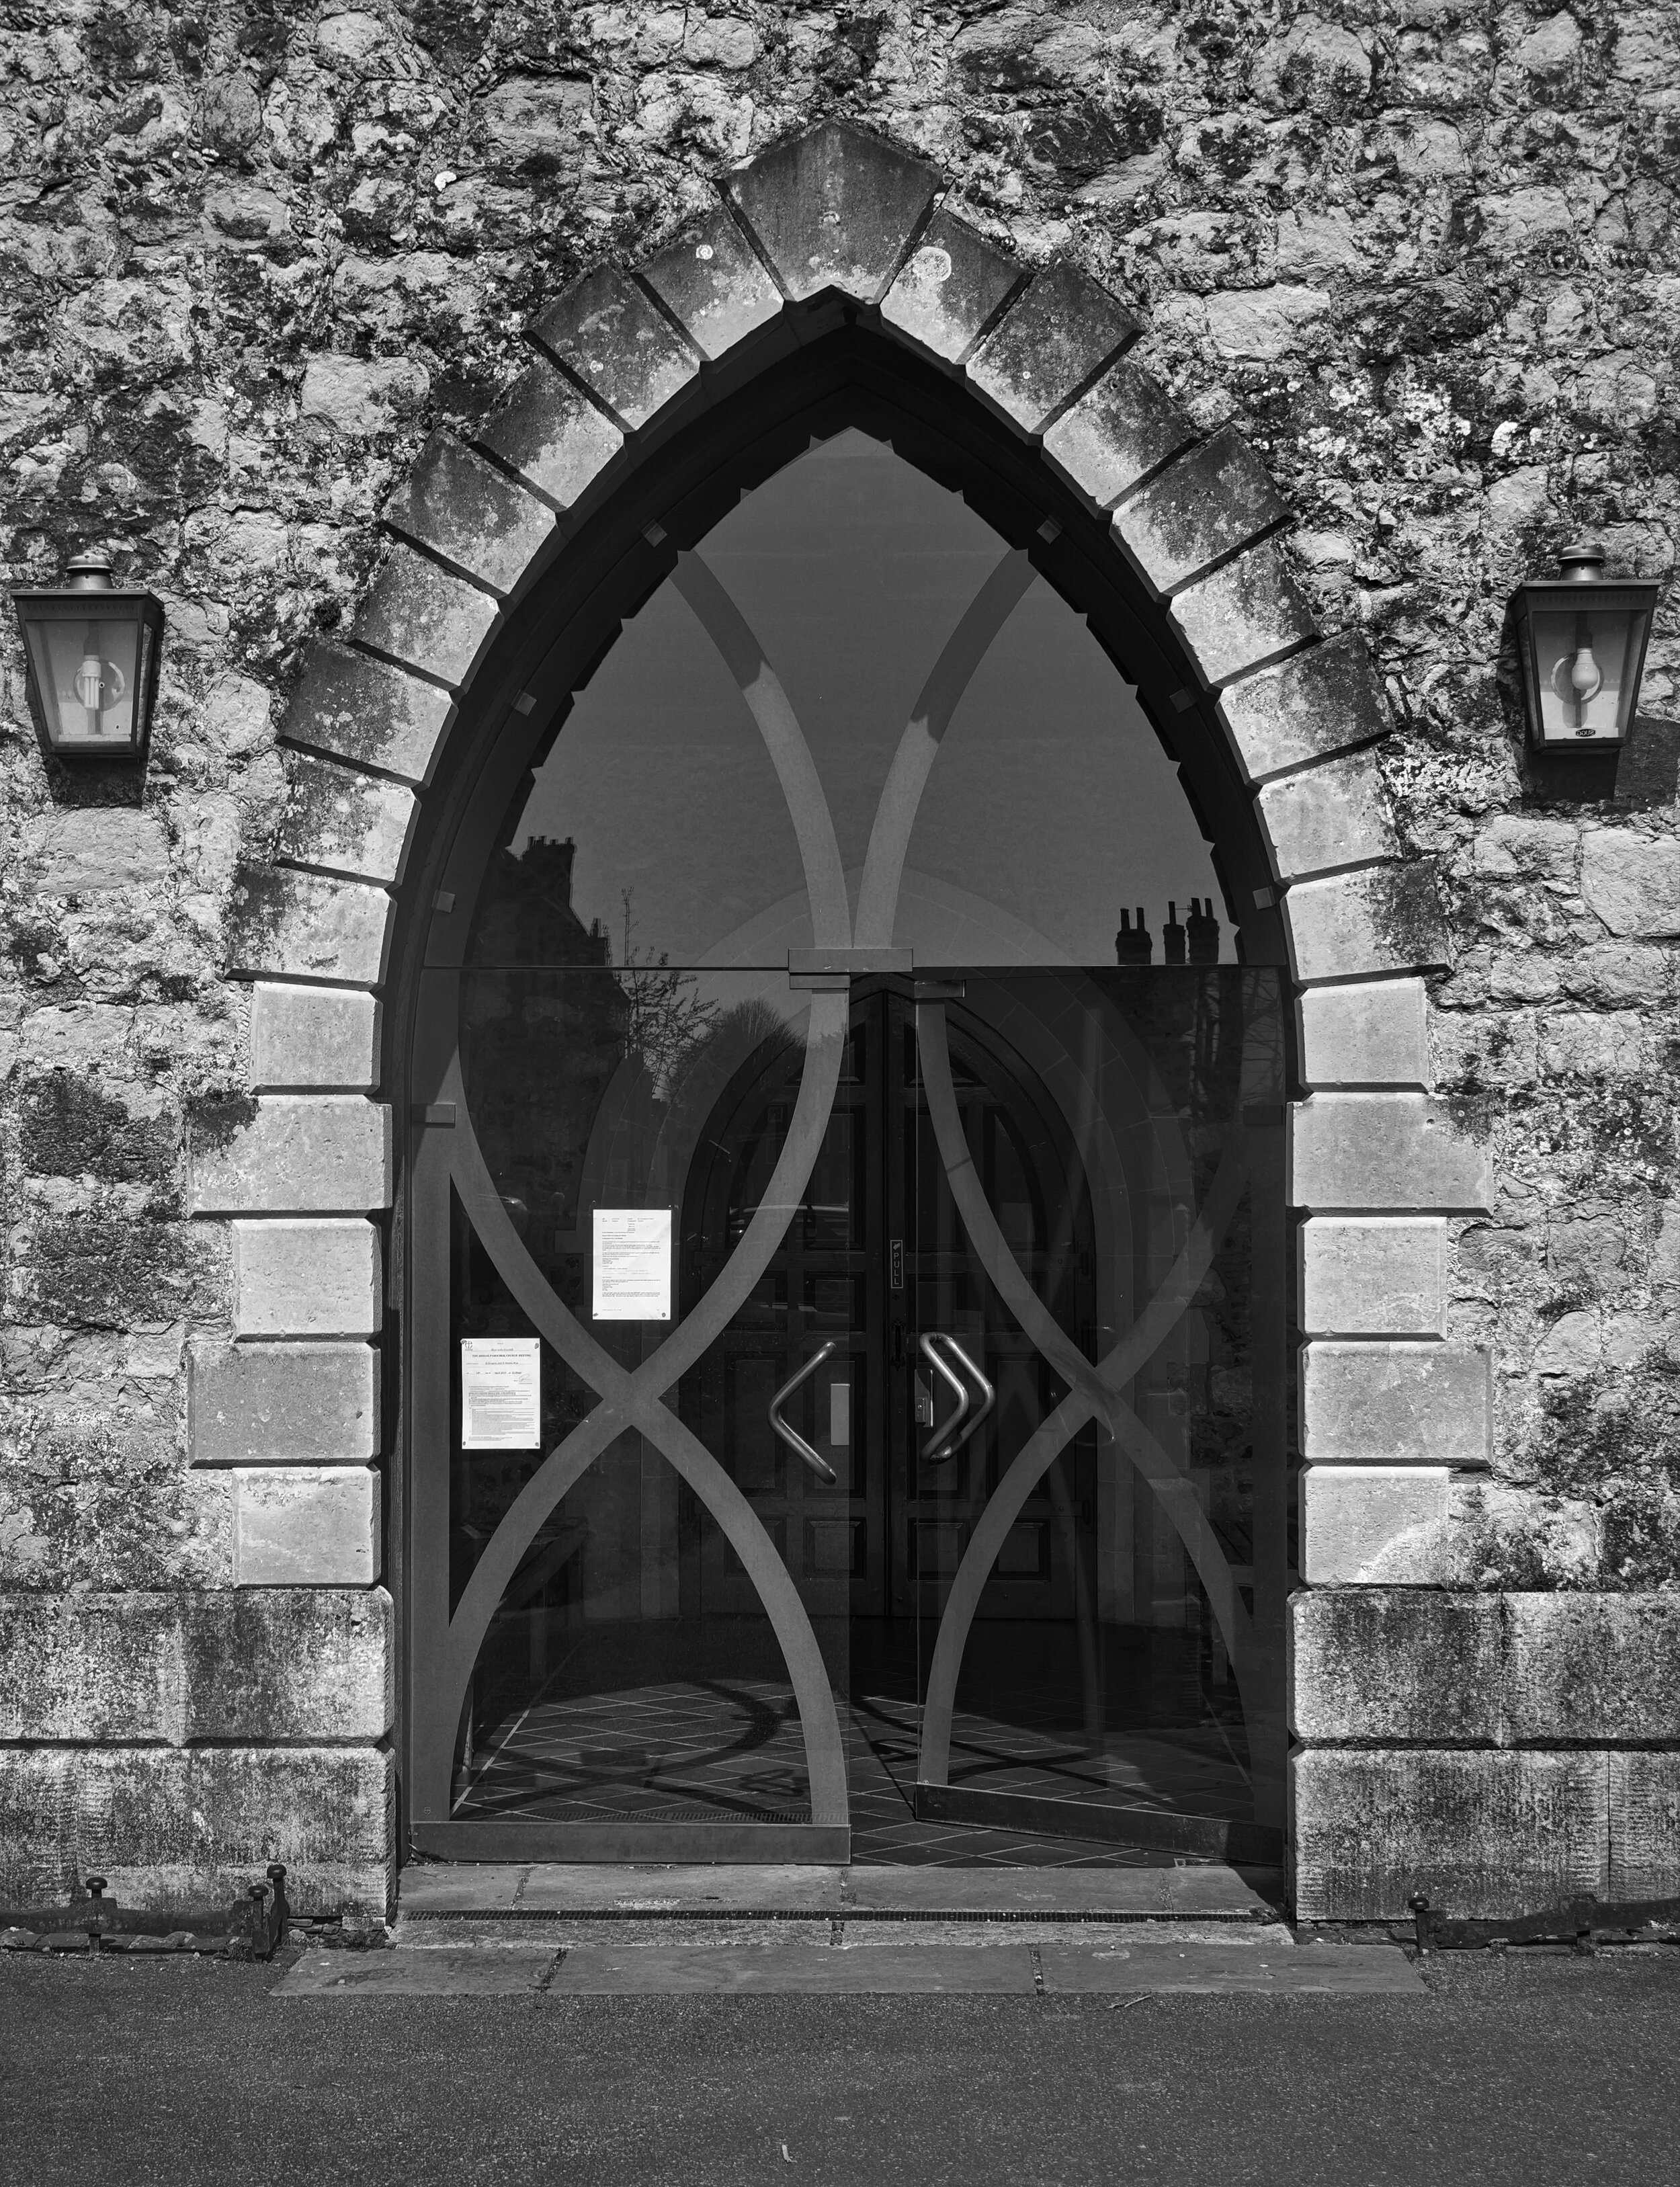 porch-door-of-st-gregory-and-st-martins-church-wye_48742929331_o.jpg